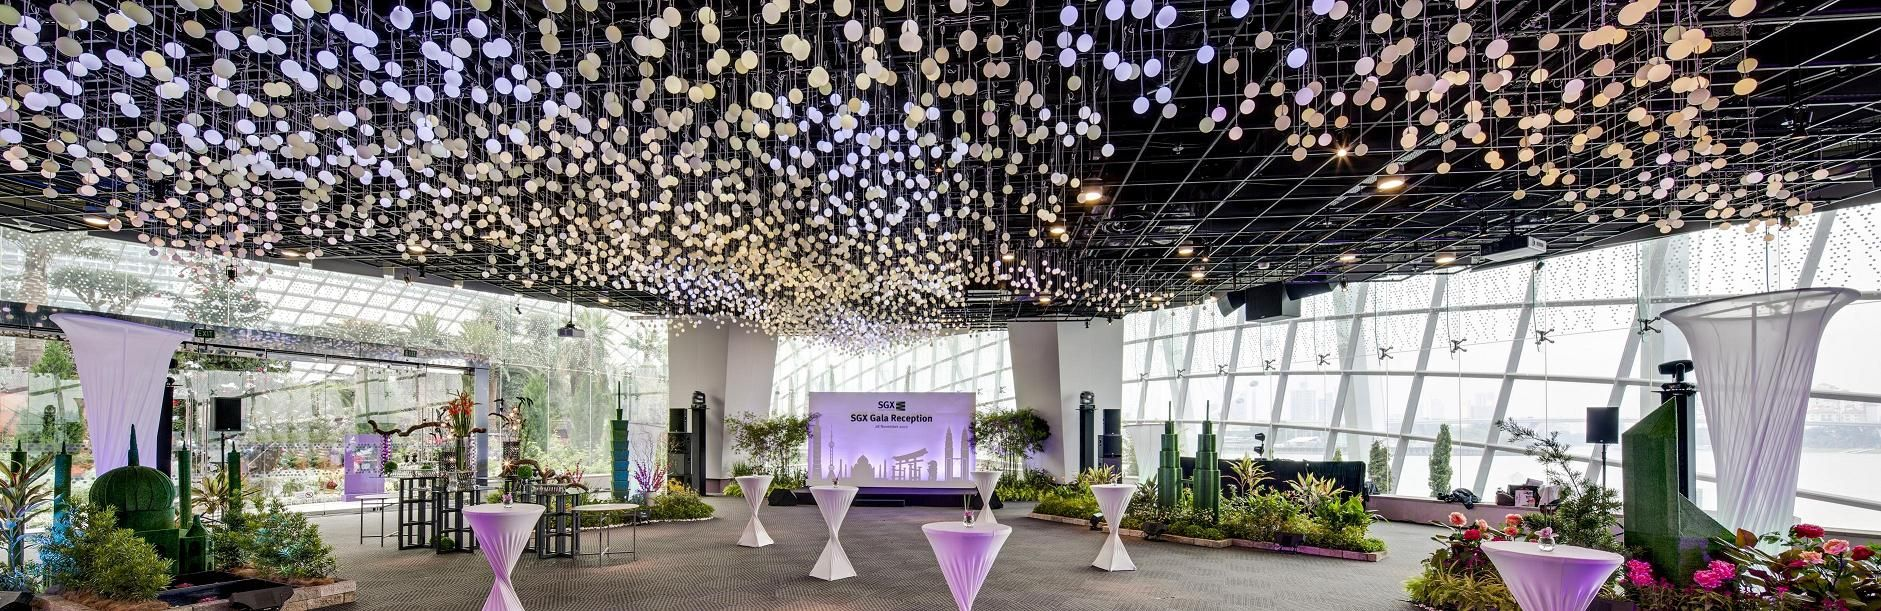 flower field hall at gardens by the bay is it a spacious enough venue for your wedding ceremony - Garden By The Bay Flower Field Hall